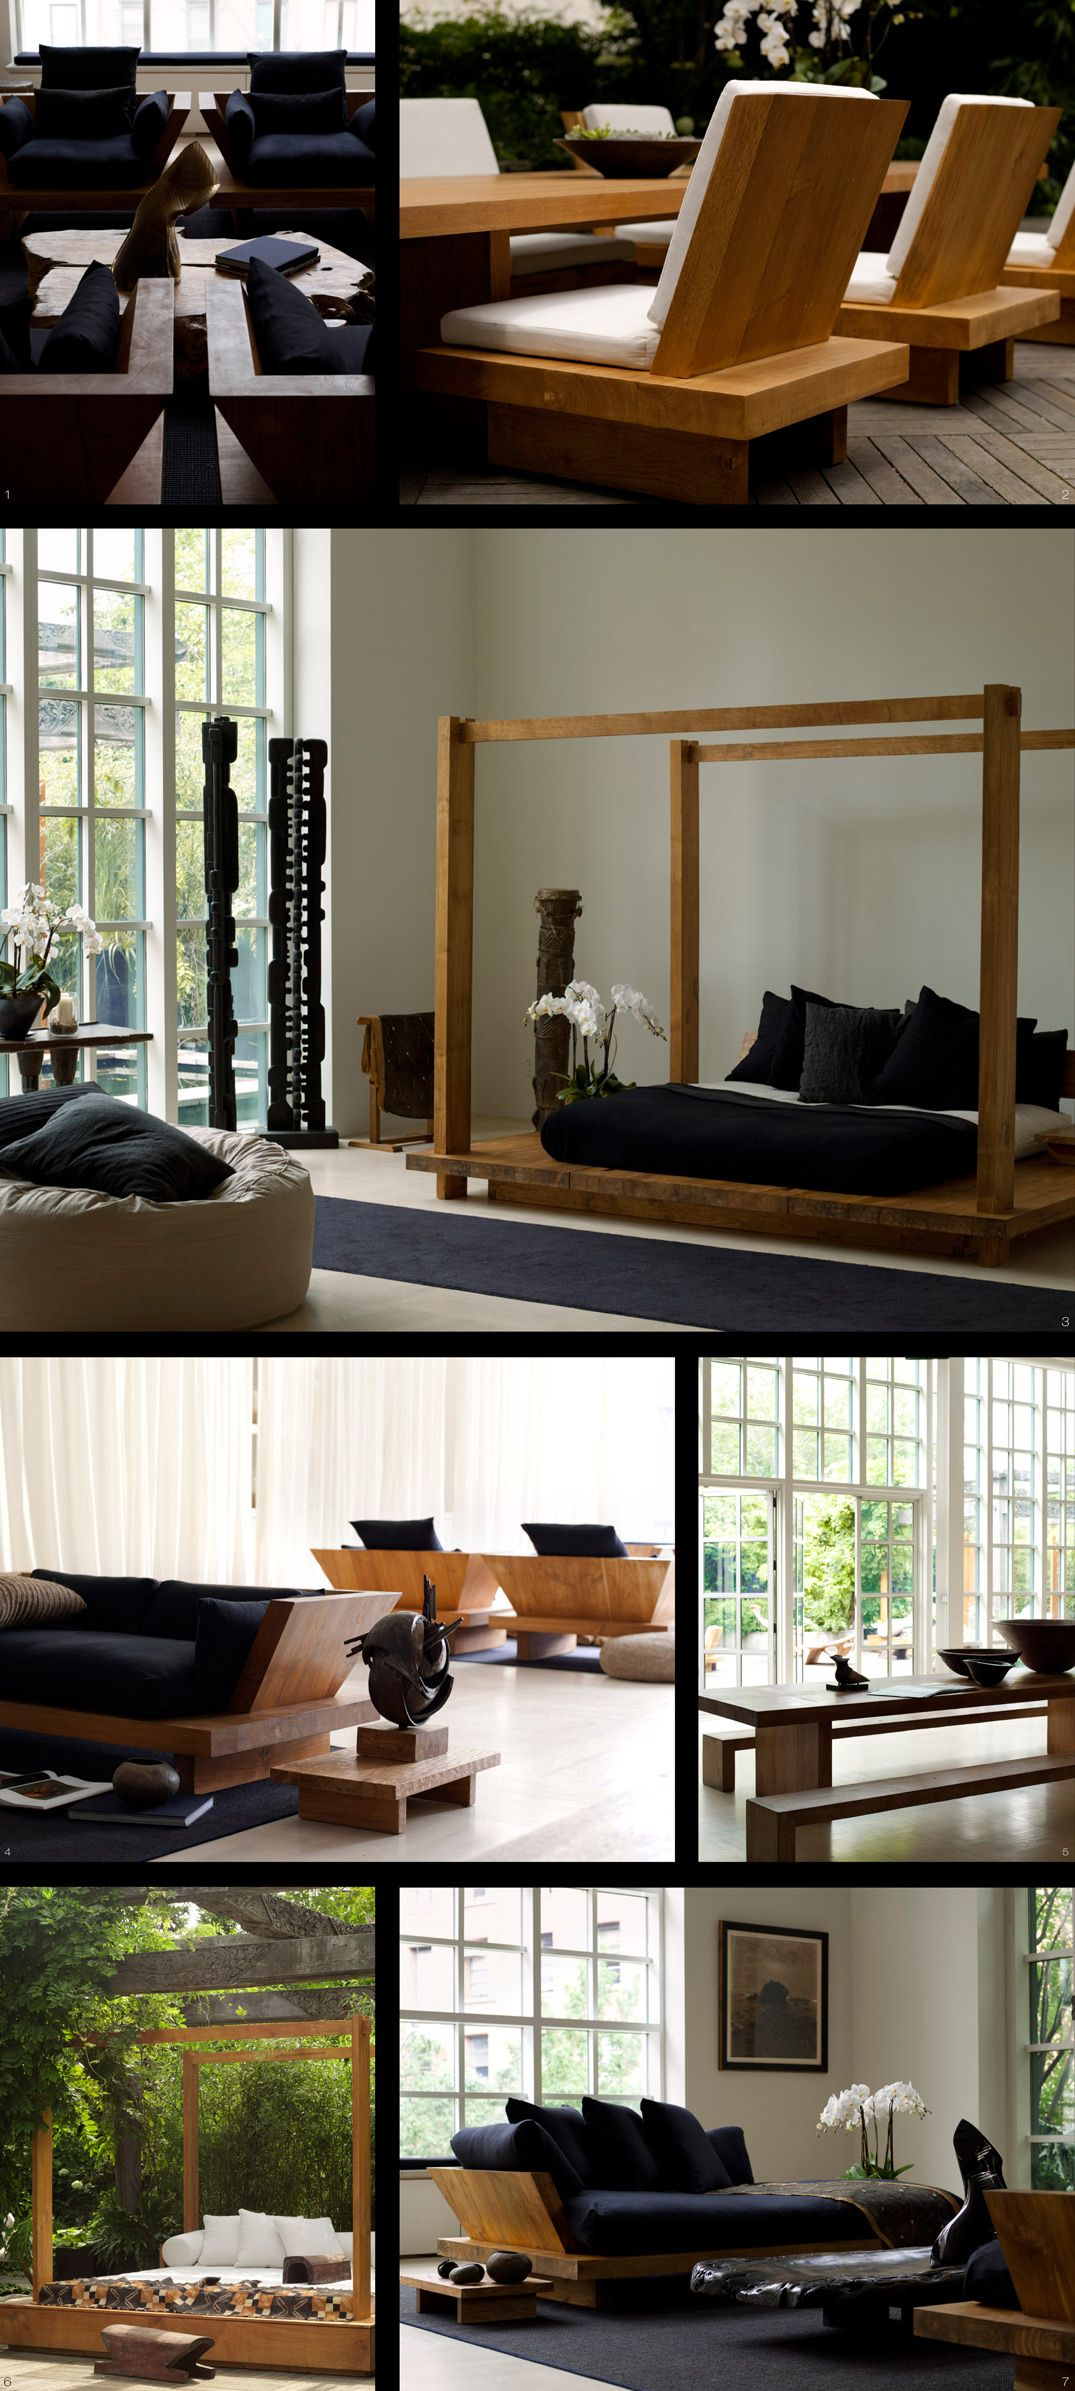 Rooms By Design Furniture Store: Pin On For The Home